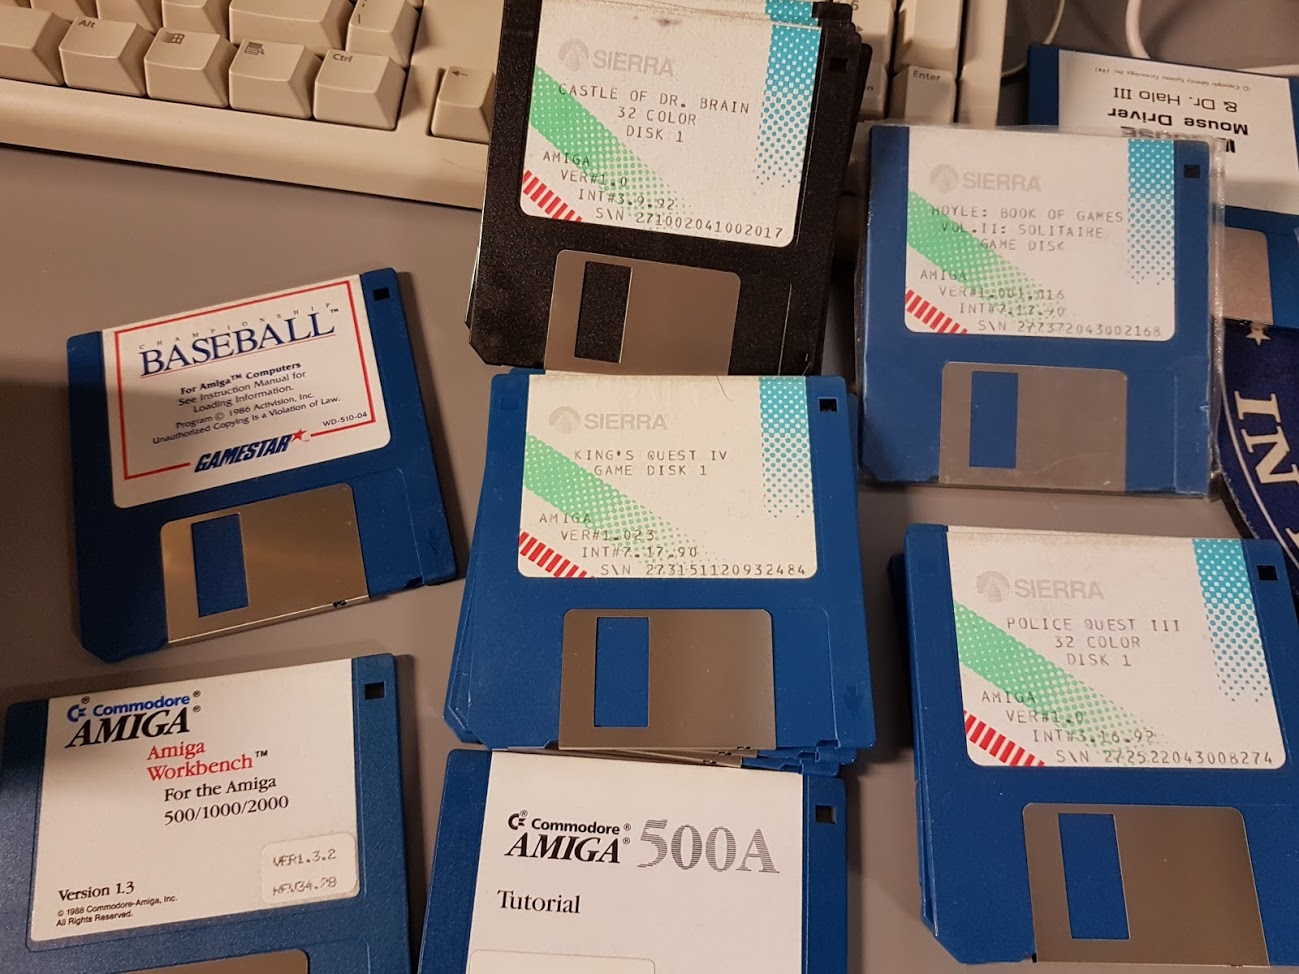 5 -  Various floppies including originals of some Sierra games.